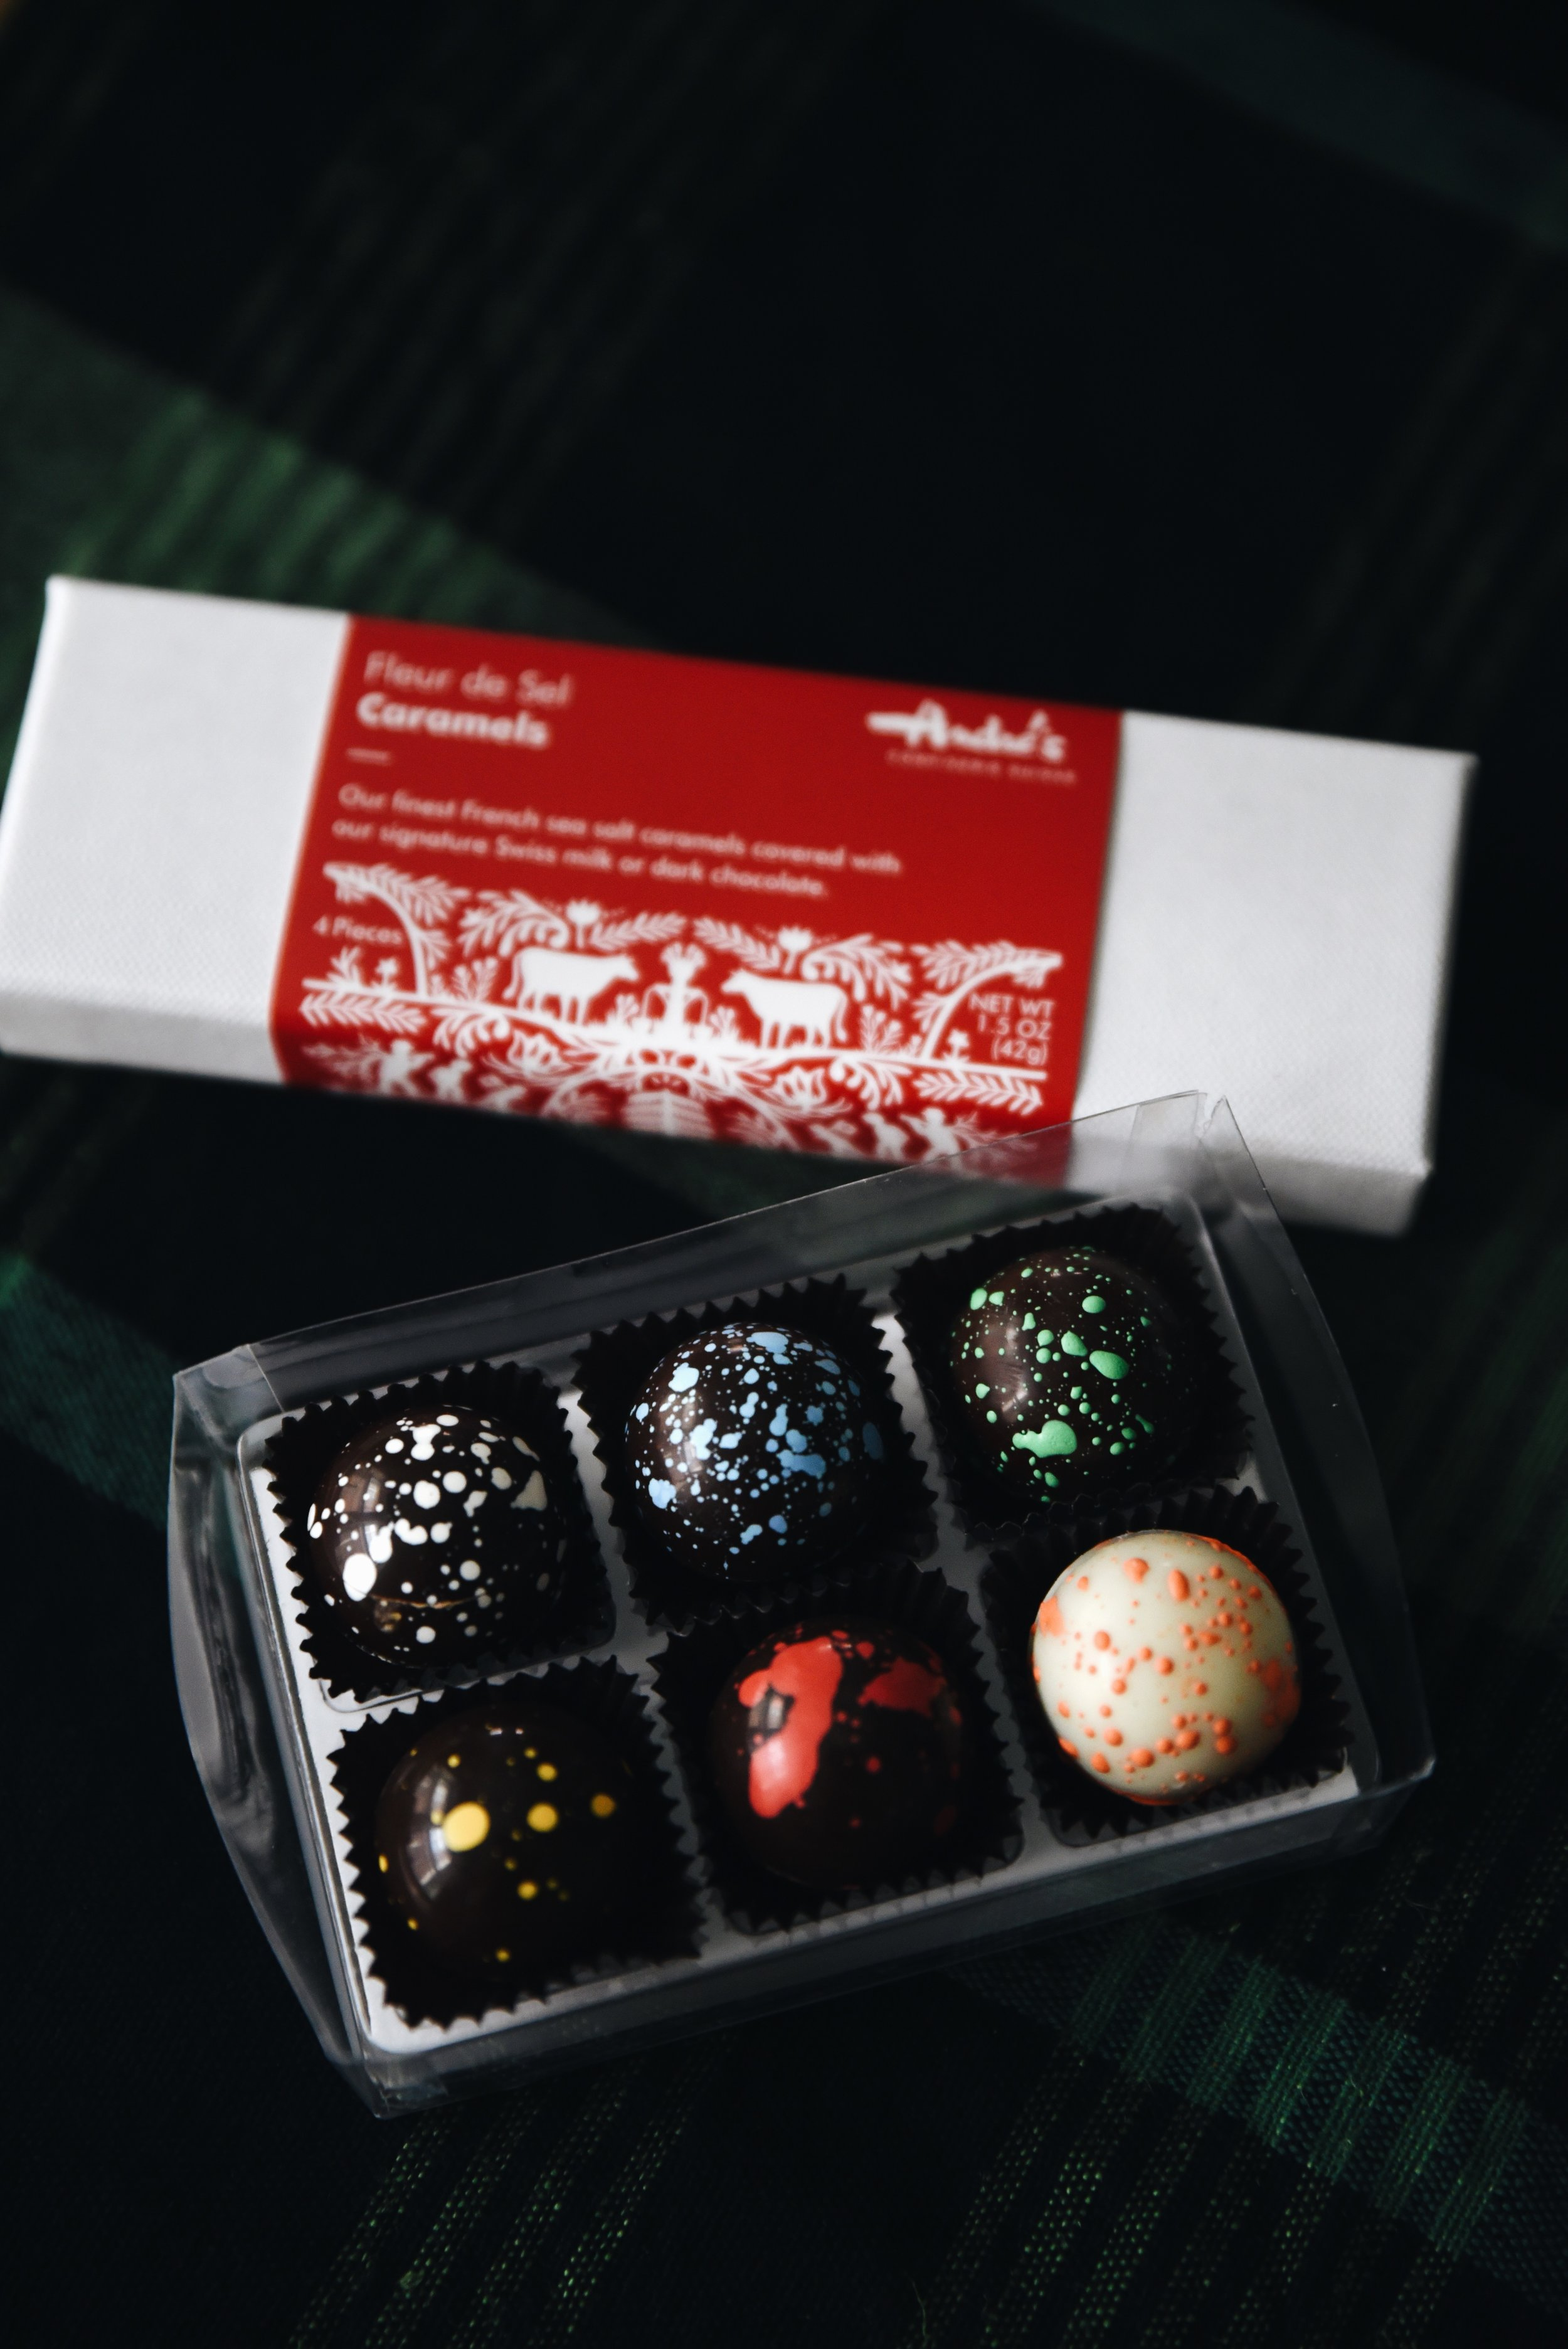 André's chocolates.